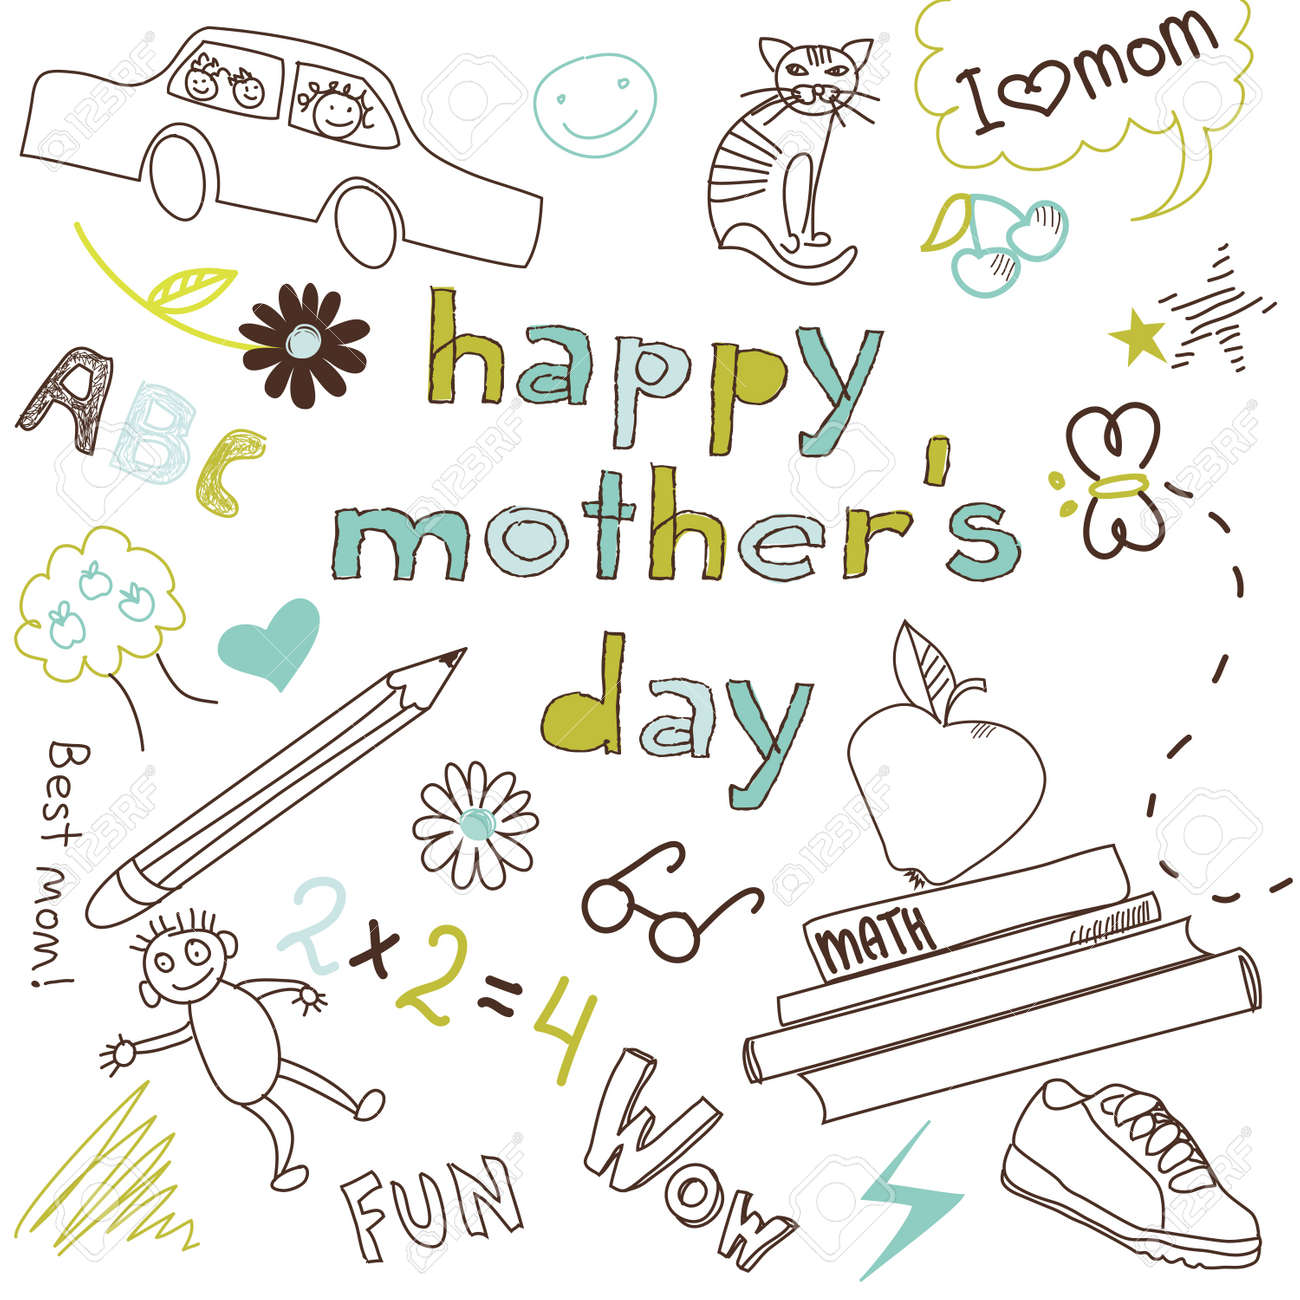 Mother's day card in a style of a Child's drawing Stock Vector - 13339754